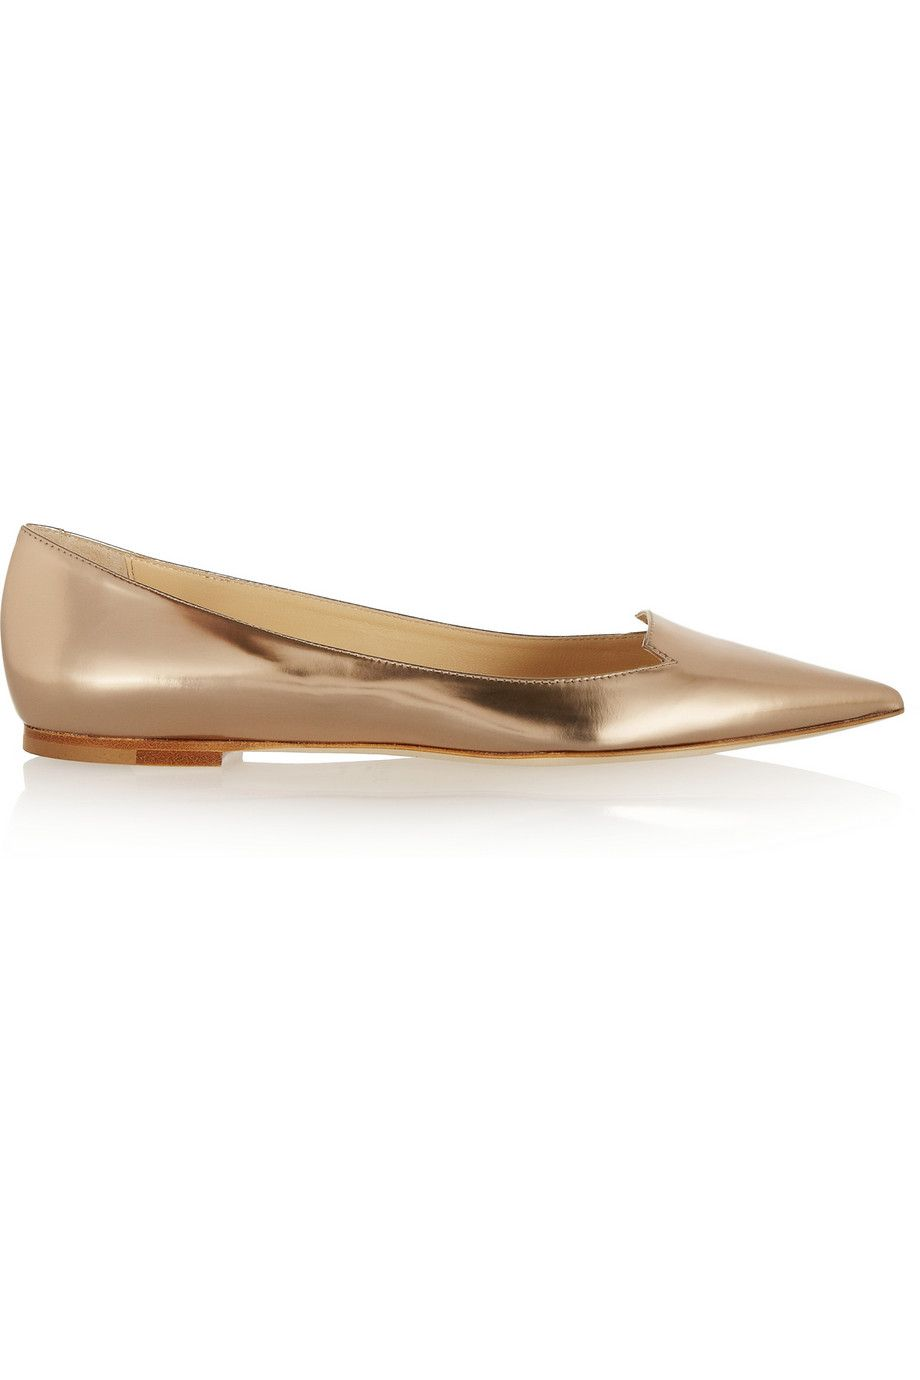 jimmy choo attila mirrored leather point toe flats these shoes are rh pinterest com